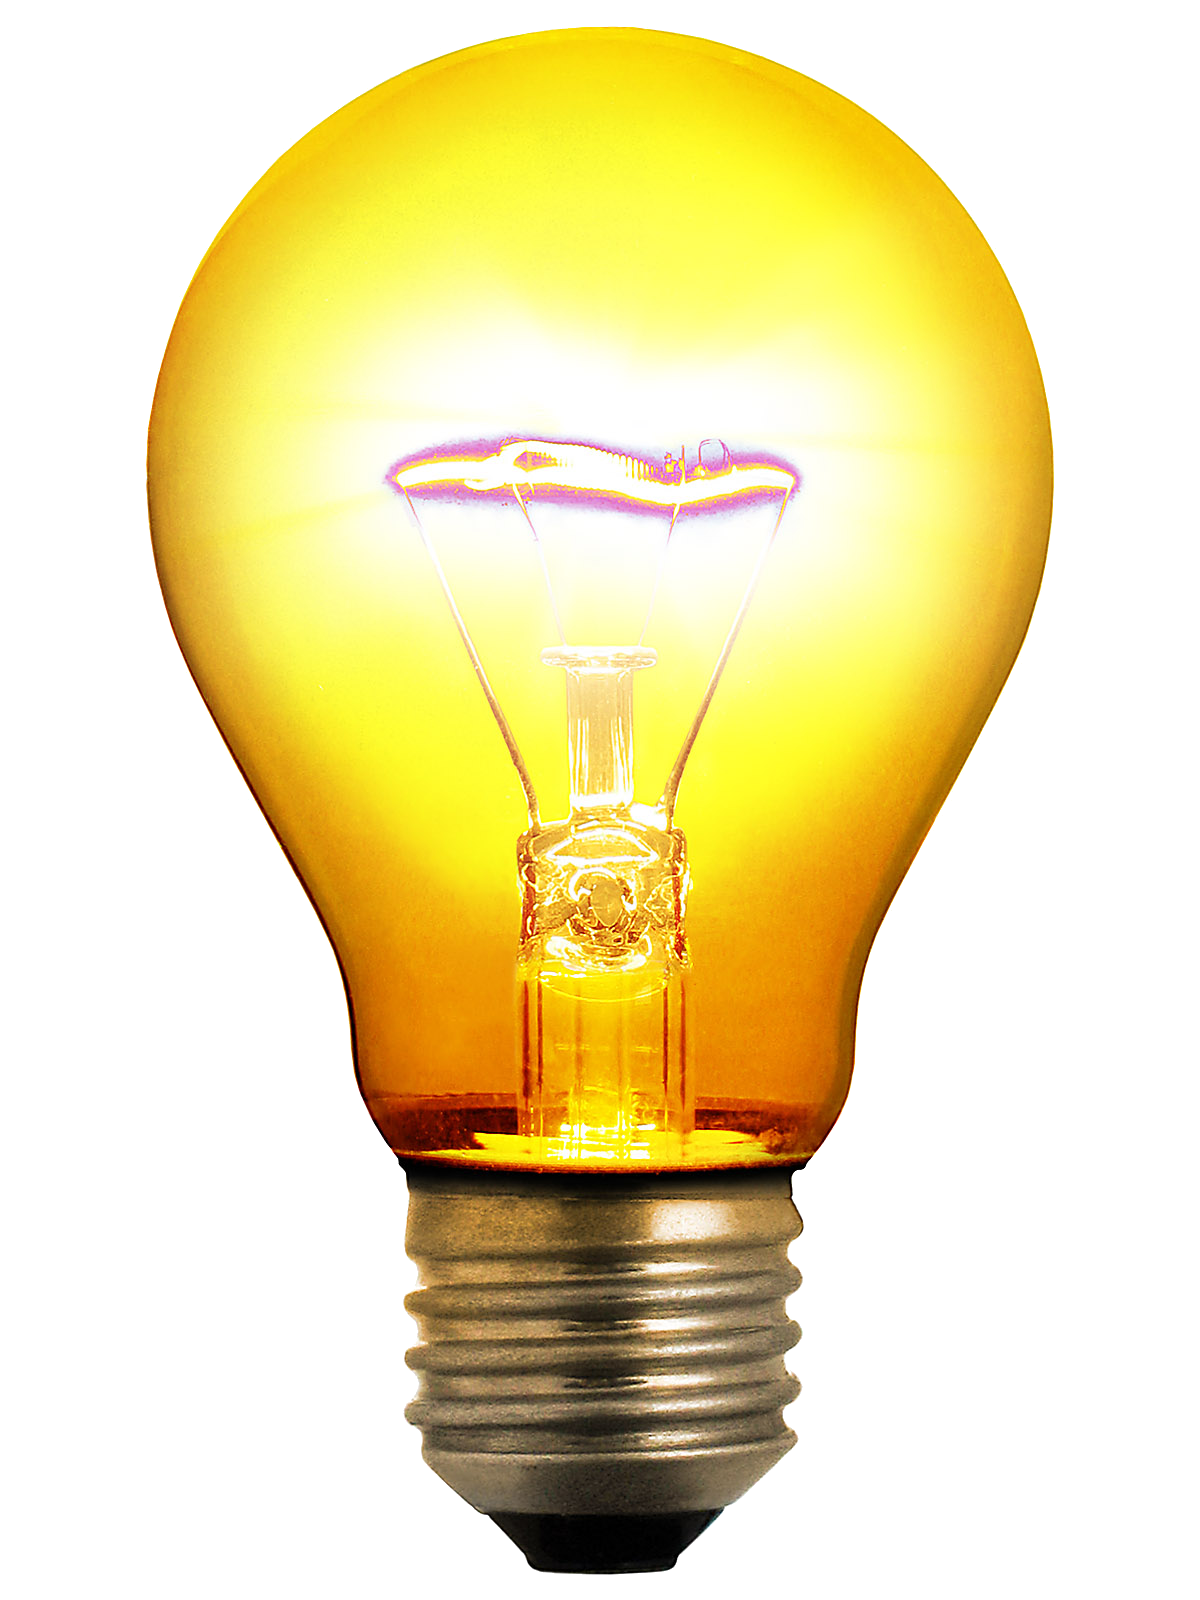 Glowing bulb clip art. Electrical clipart glow